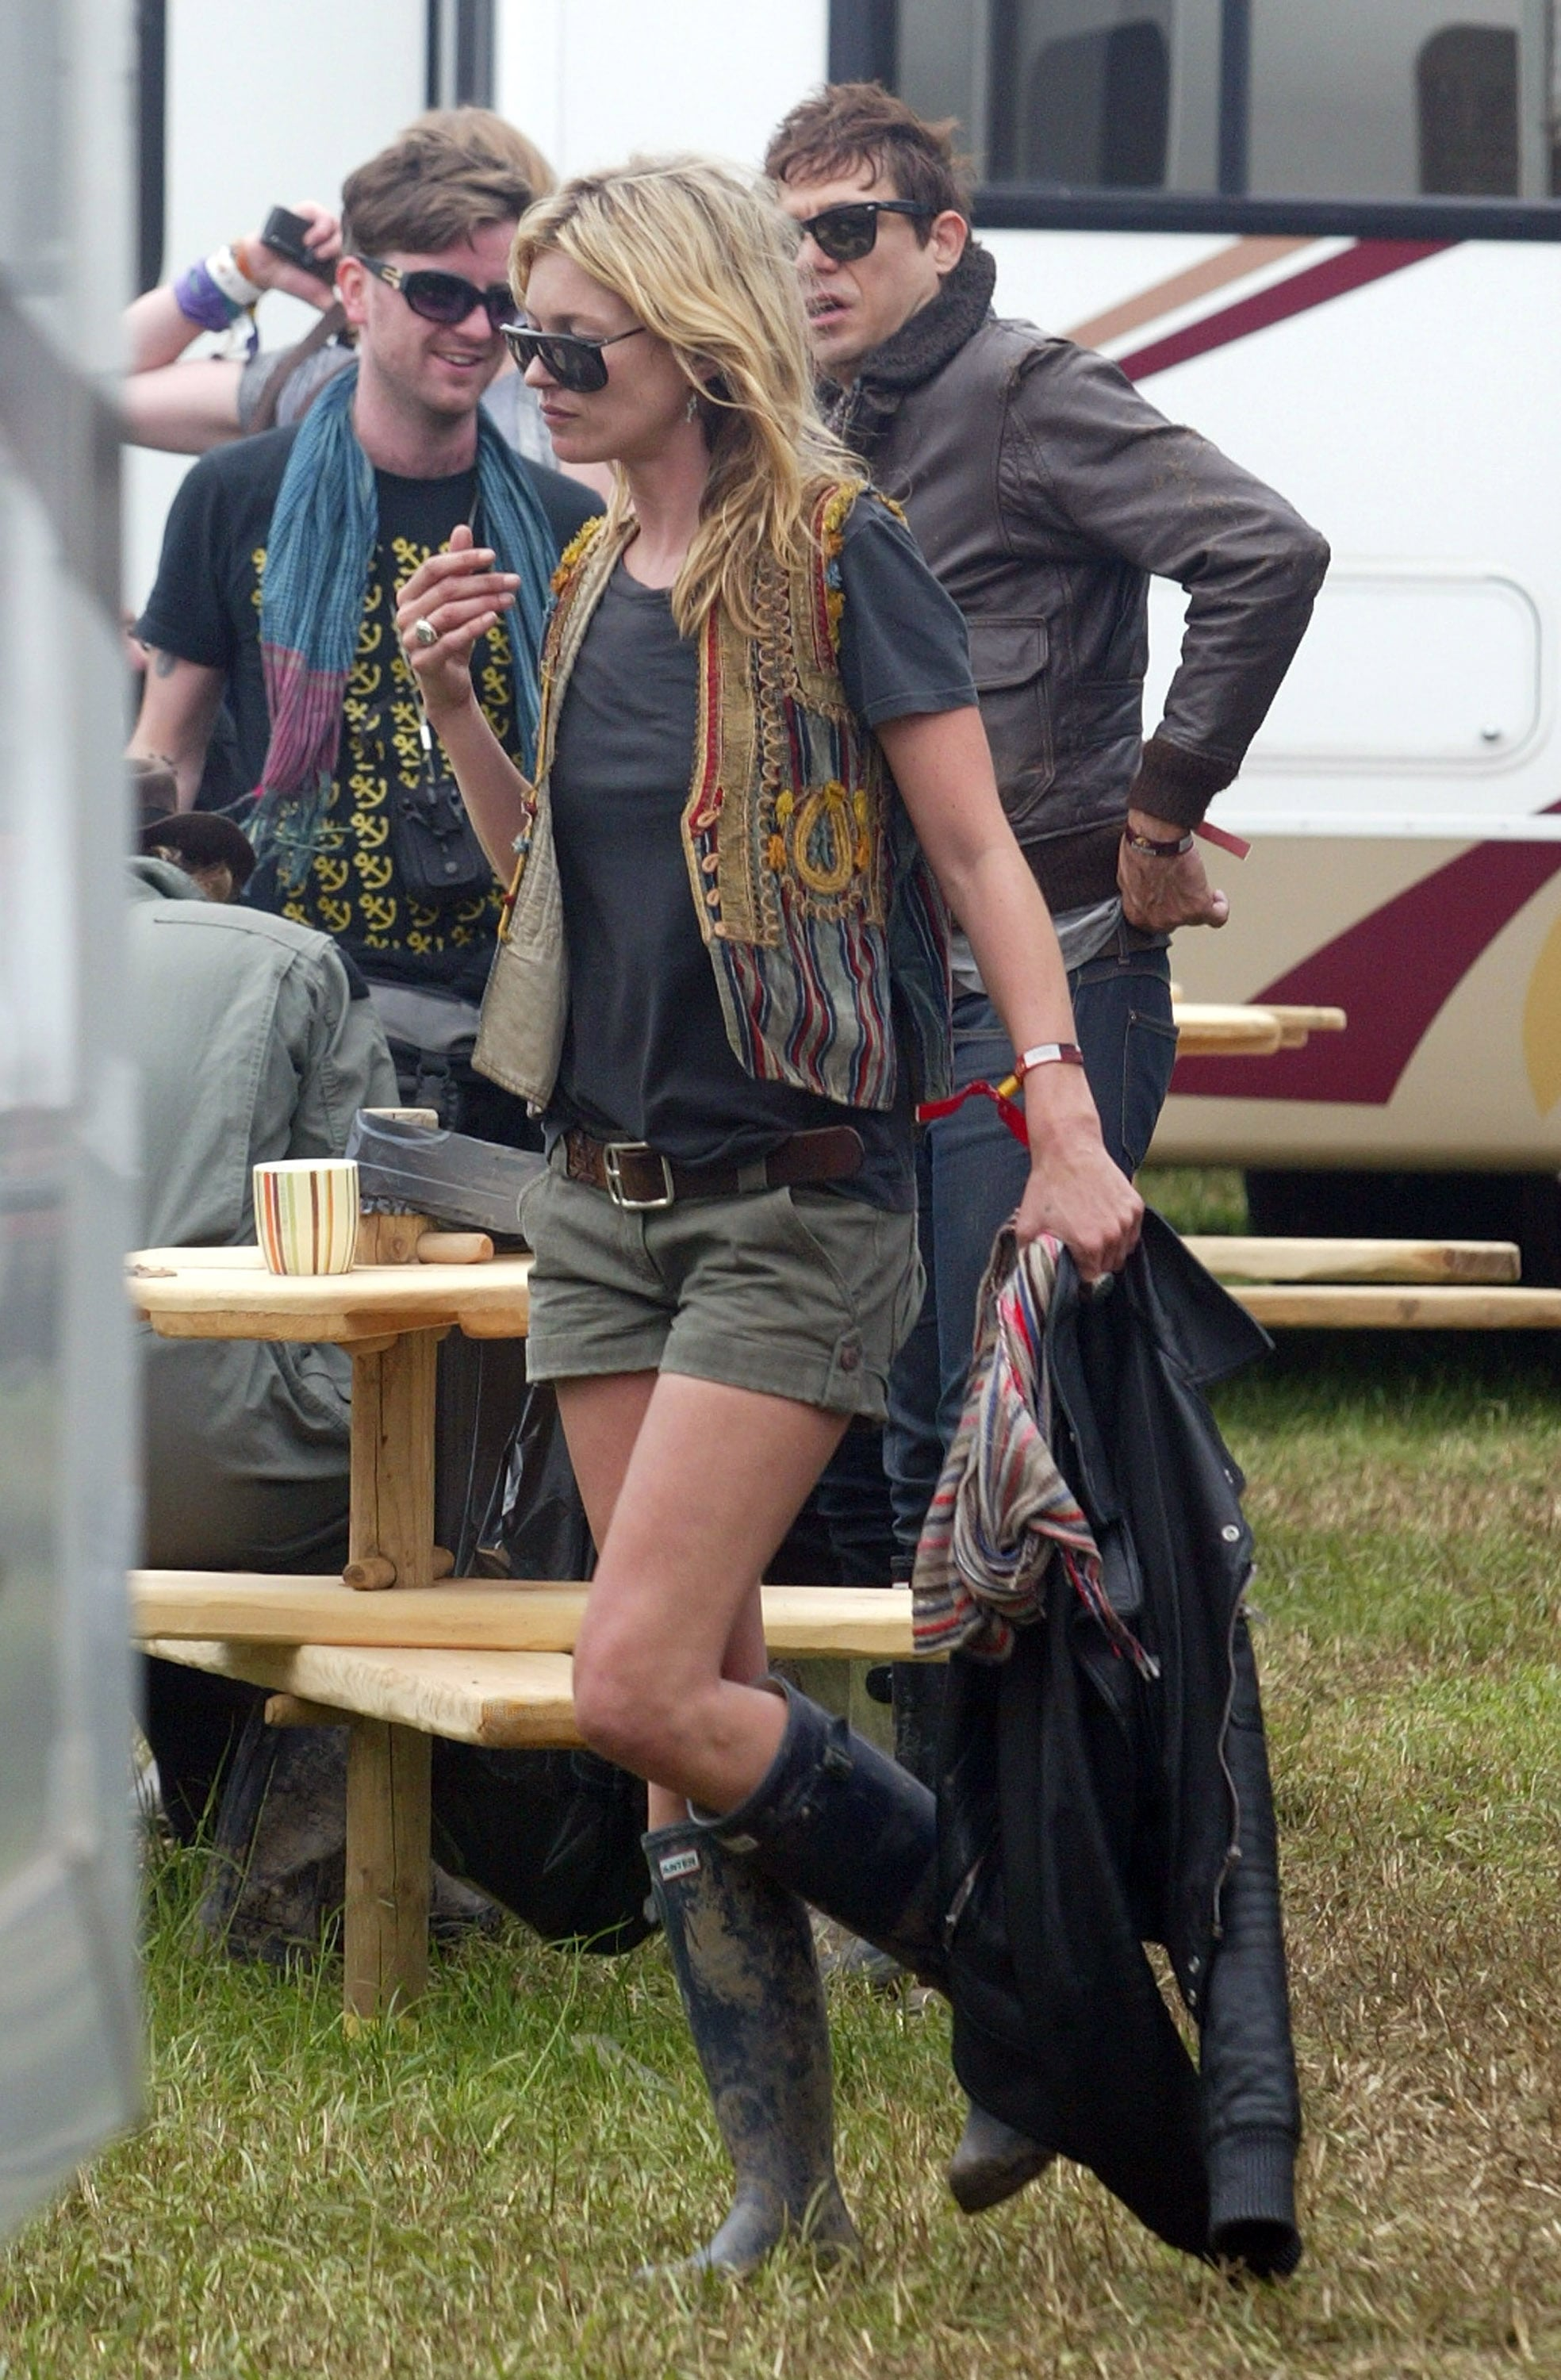 GLASTONBURY, UNITED KINGDOM - JUNE 28:  Kate Moss is seen during day two of the 2008 Glastonbury Festival on June 27, 2008 in Glastonbury, Somerset, England.  (Photo by Danny Martindale/WireImage)